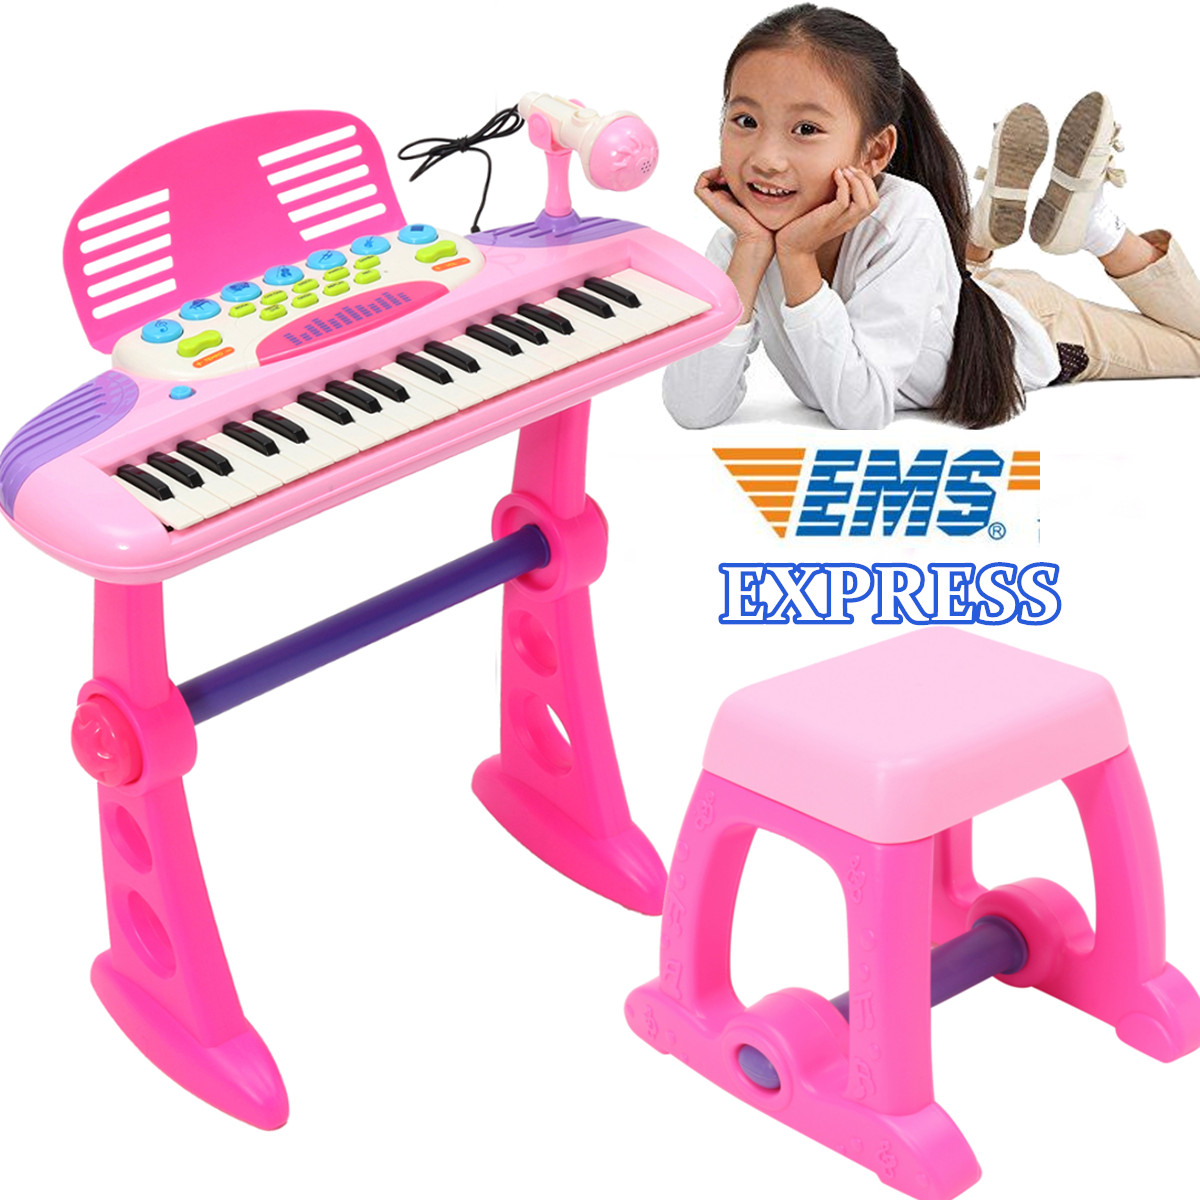 все цены на Pink 37 Key Kids Electronic Keyboard Piano Organ Electone Toy Children Musical Educational Instrument with Microphone Stool Gift